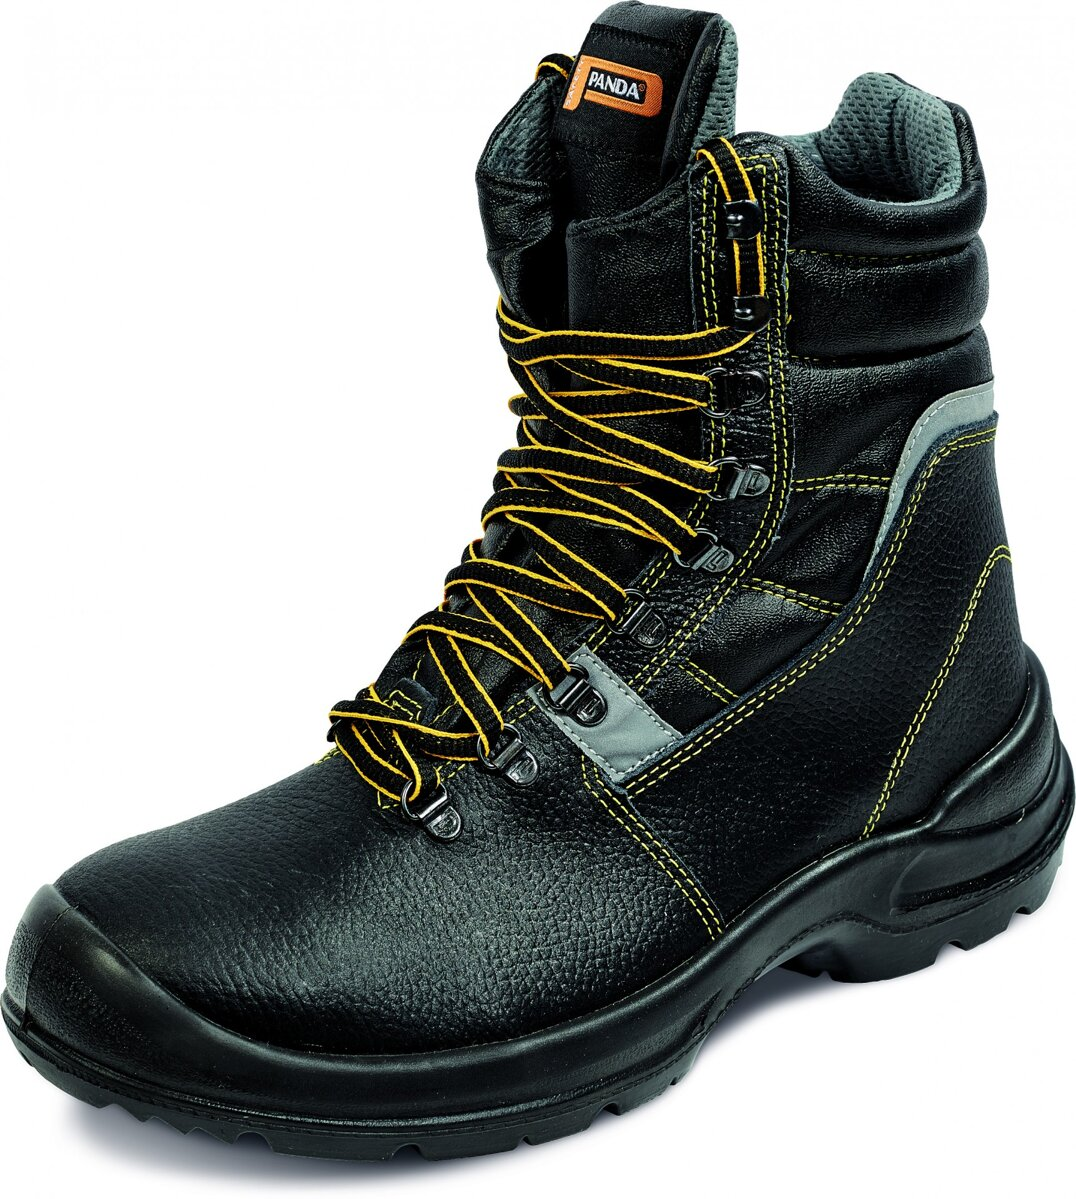 5150de193f14 STRONG PROFESSIONAL TIGROTTO HIGH ANKLE S3 SRC